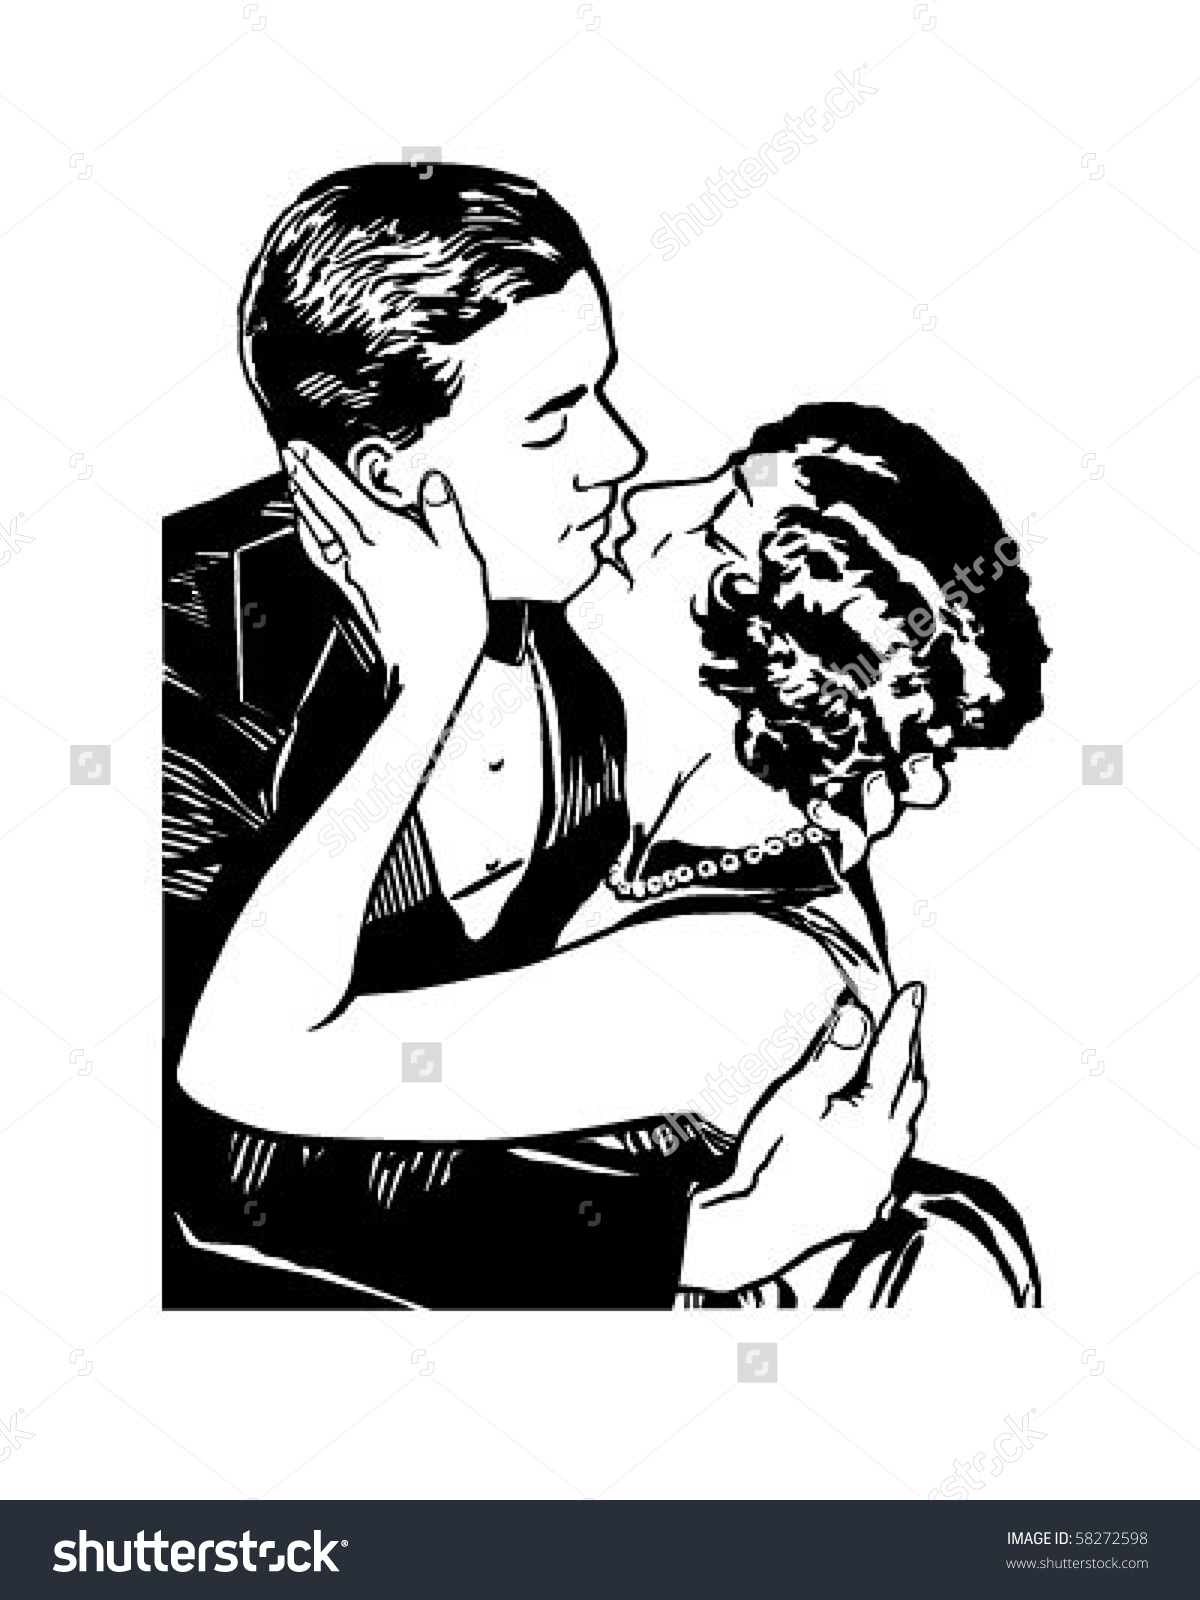 Romeo and juliet clip art graphic stock Romeo Juliet Retro Clip Art Stock Vector 58272598 - Shutterstock graphic stock